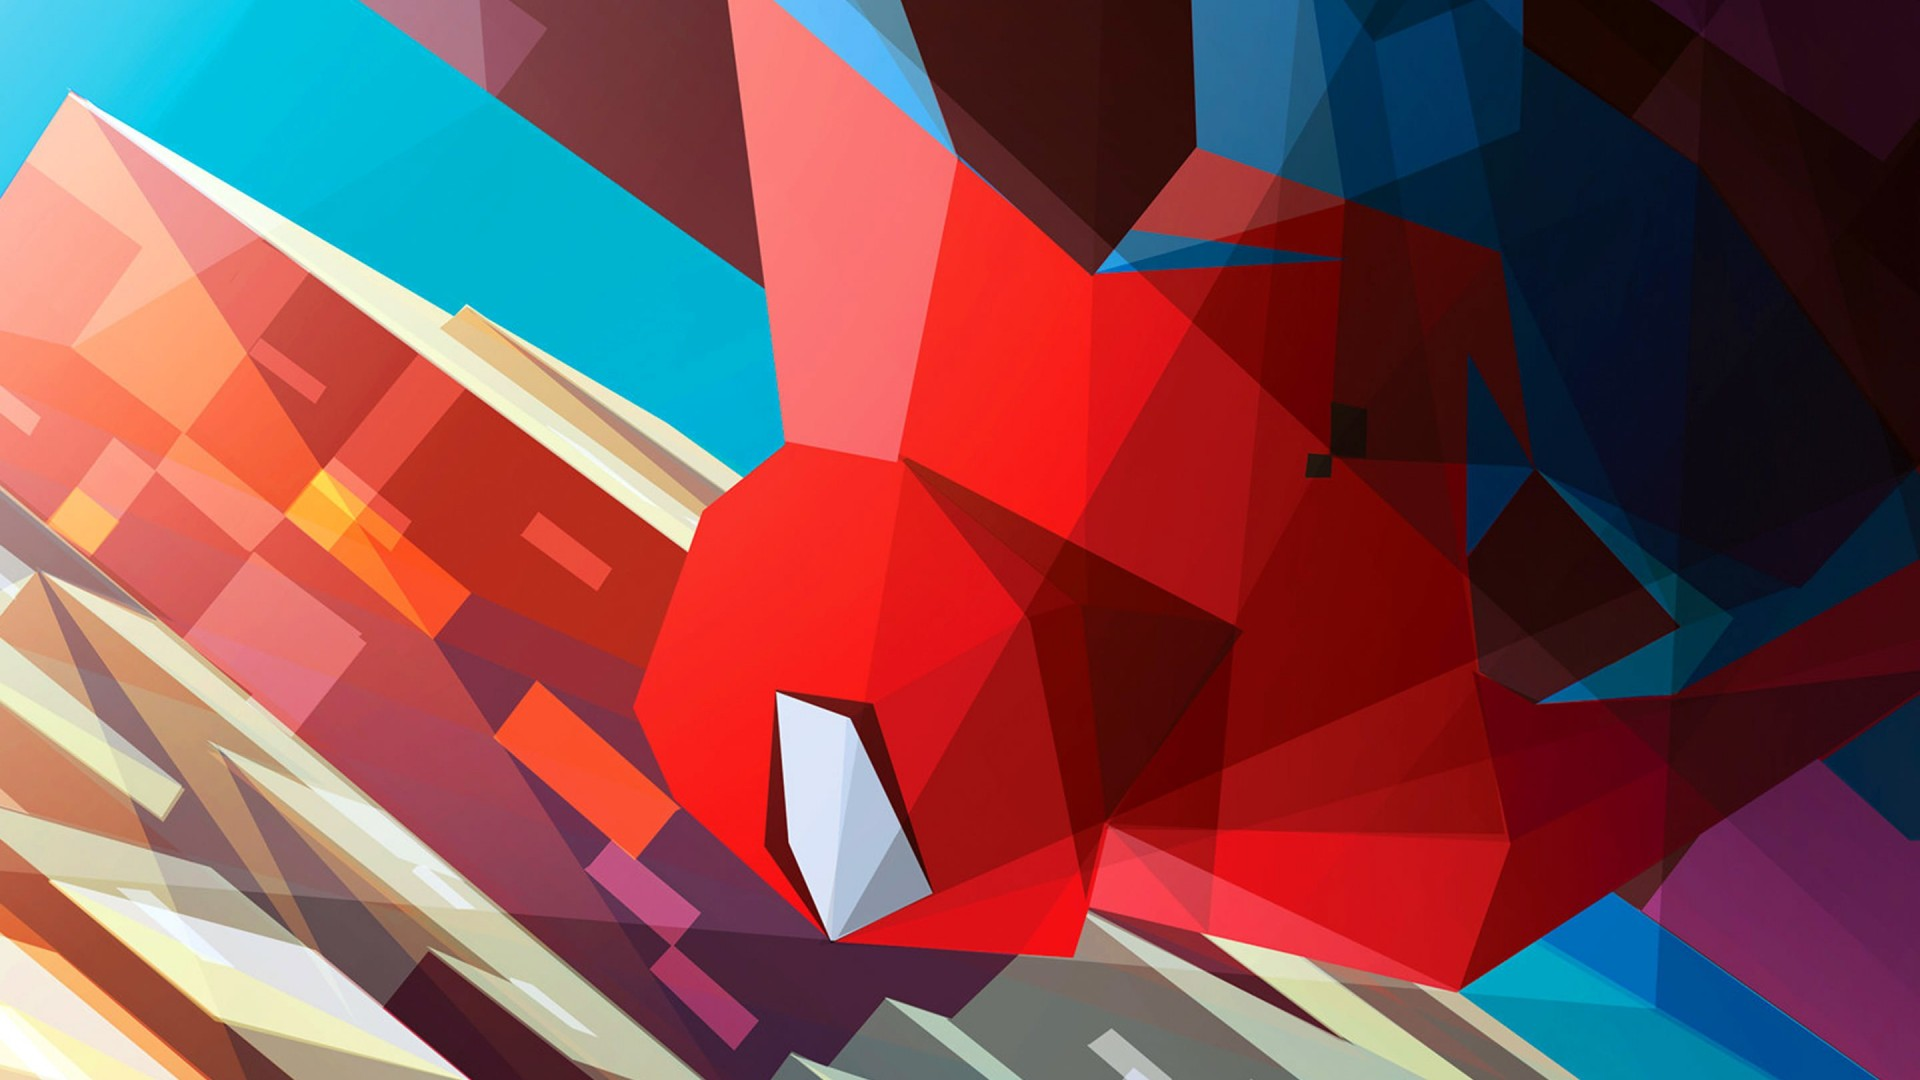 Spiderman Low Poly Illustration Wallpaper for Desktop 1920x1080